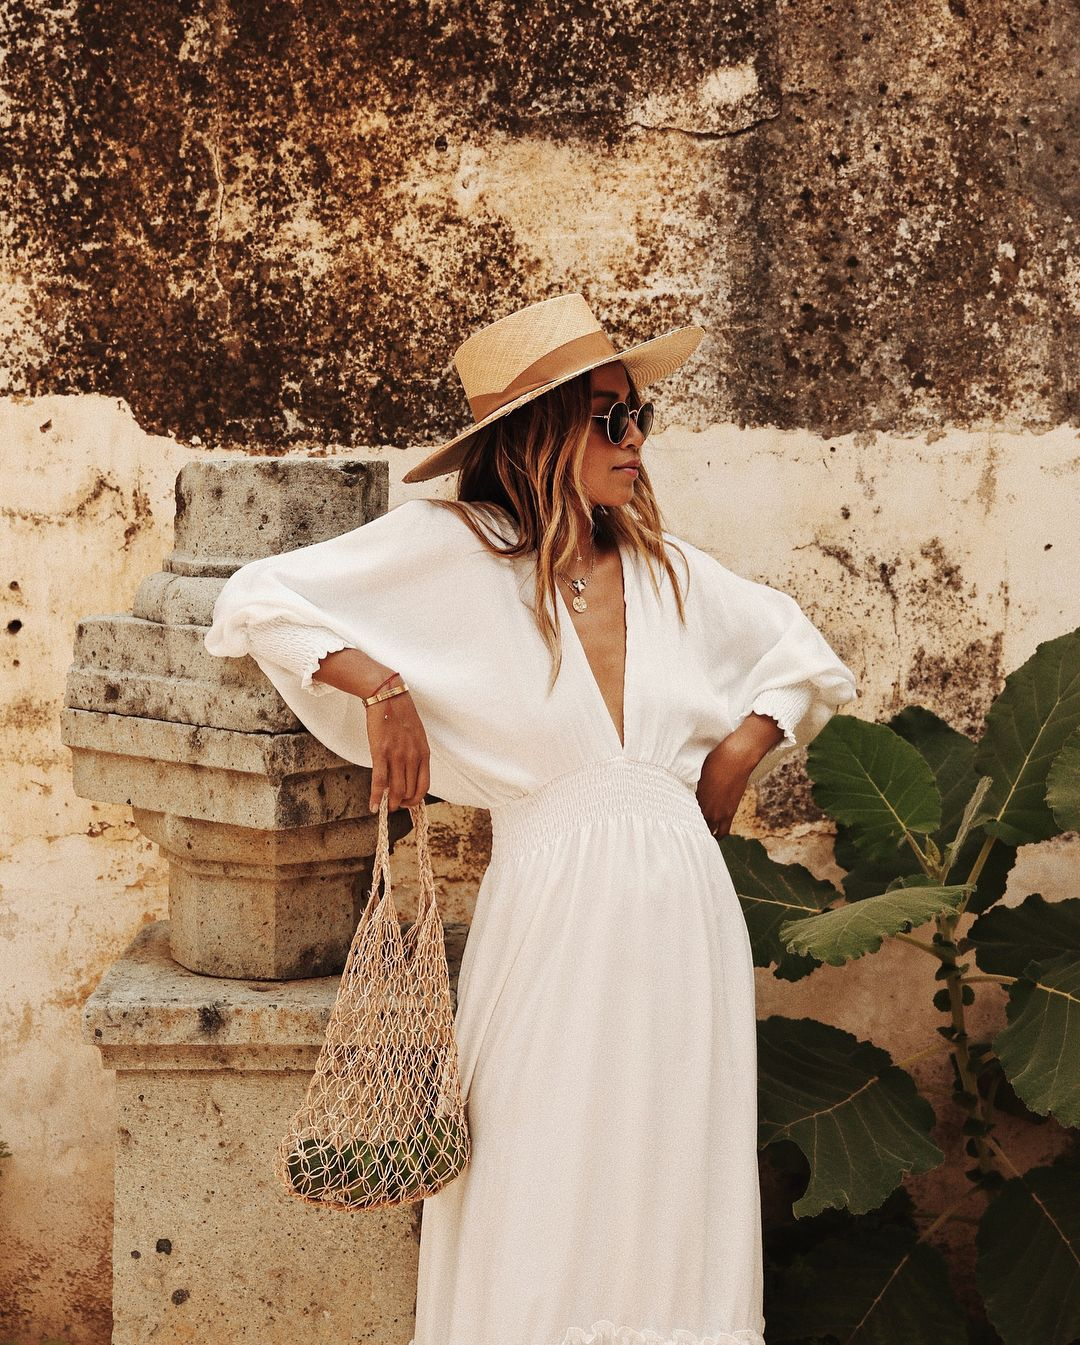 Not Letting Go Of Summer Http Liketk It 2xeqa Liketkit Screenshot This Pic To Get Shoppable Product Details With The Liketok Style Fashion Chic Outfits [ 1345 x 1080 Pixel ]